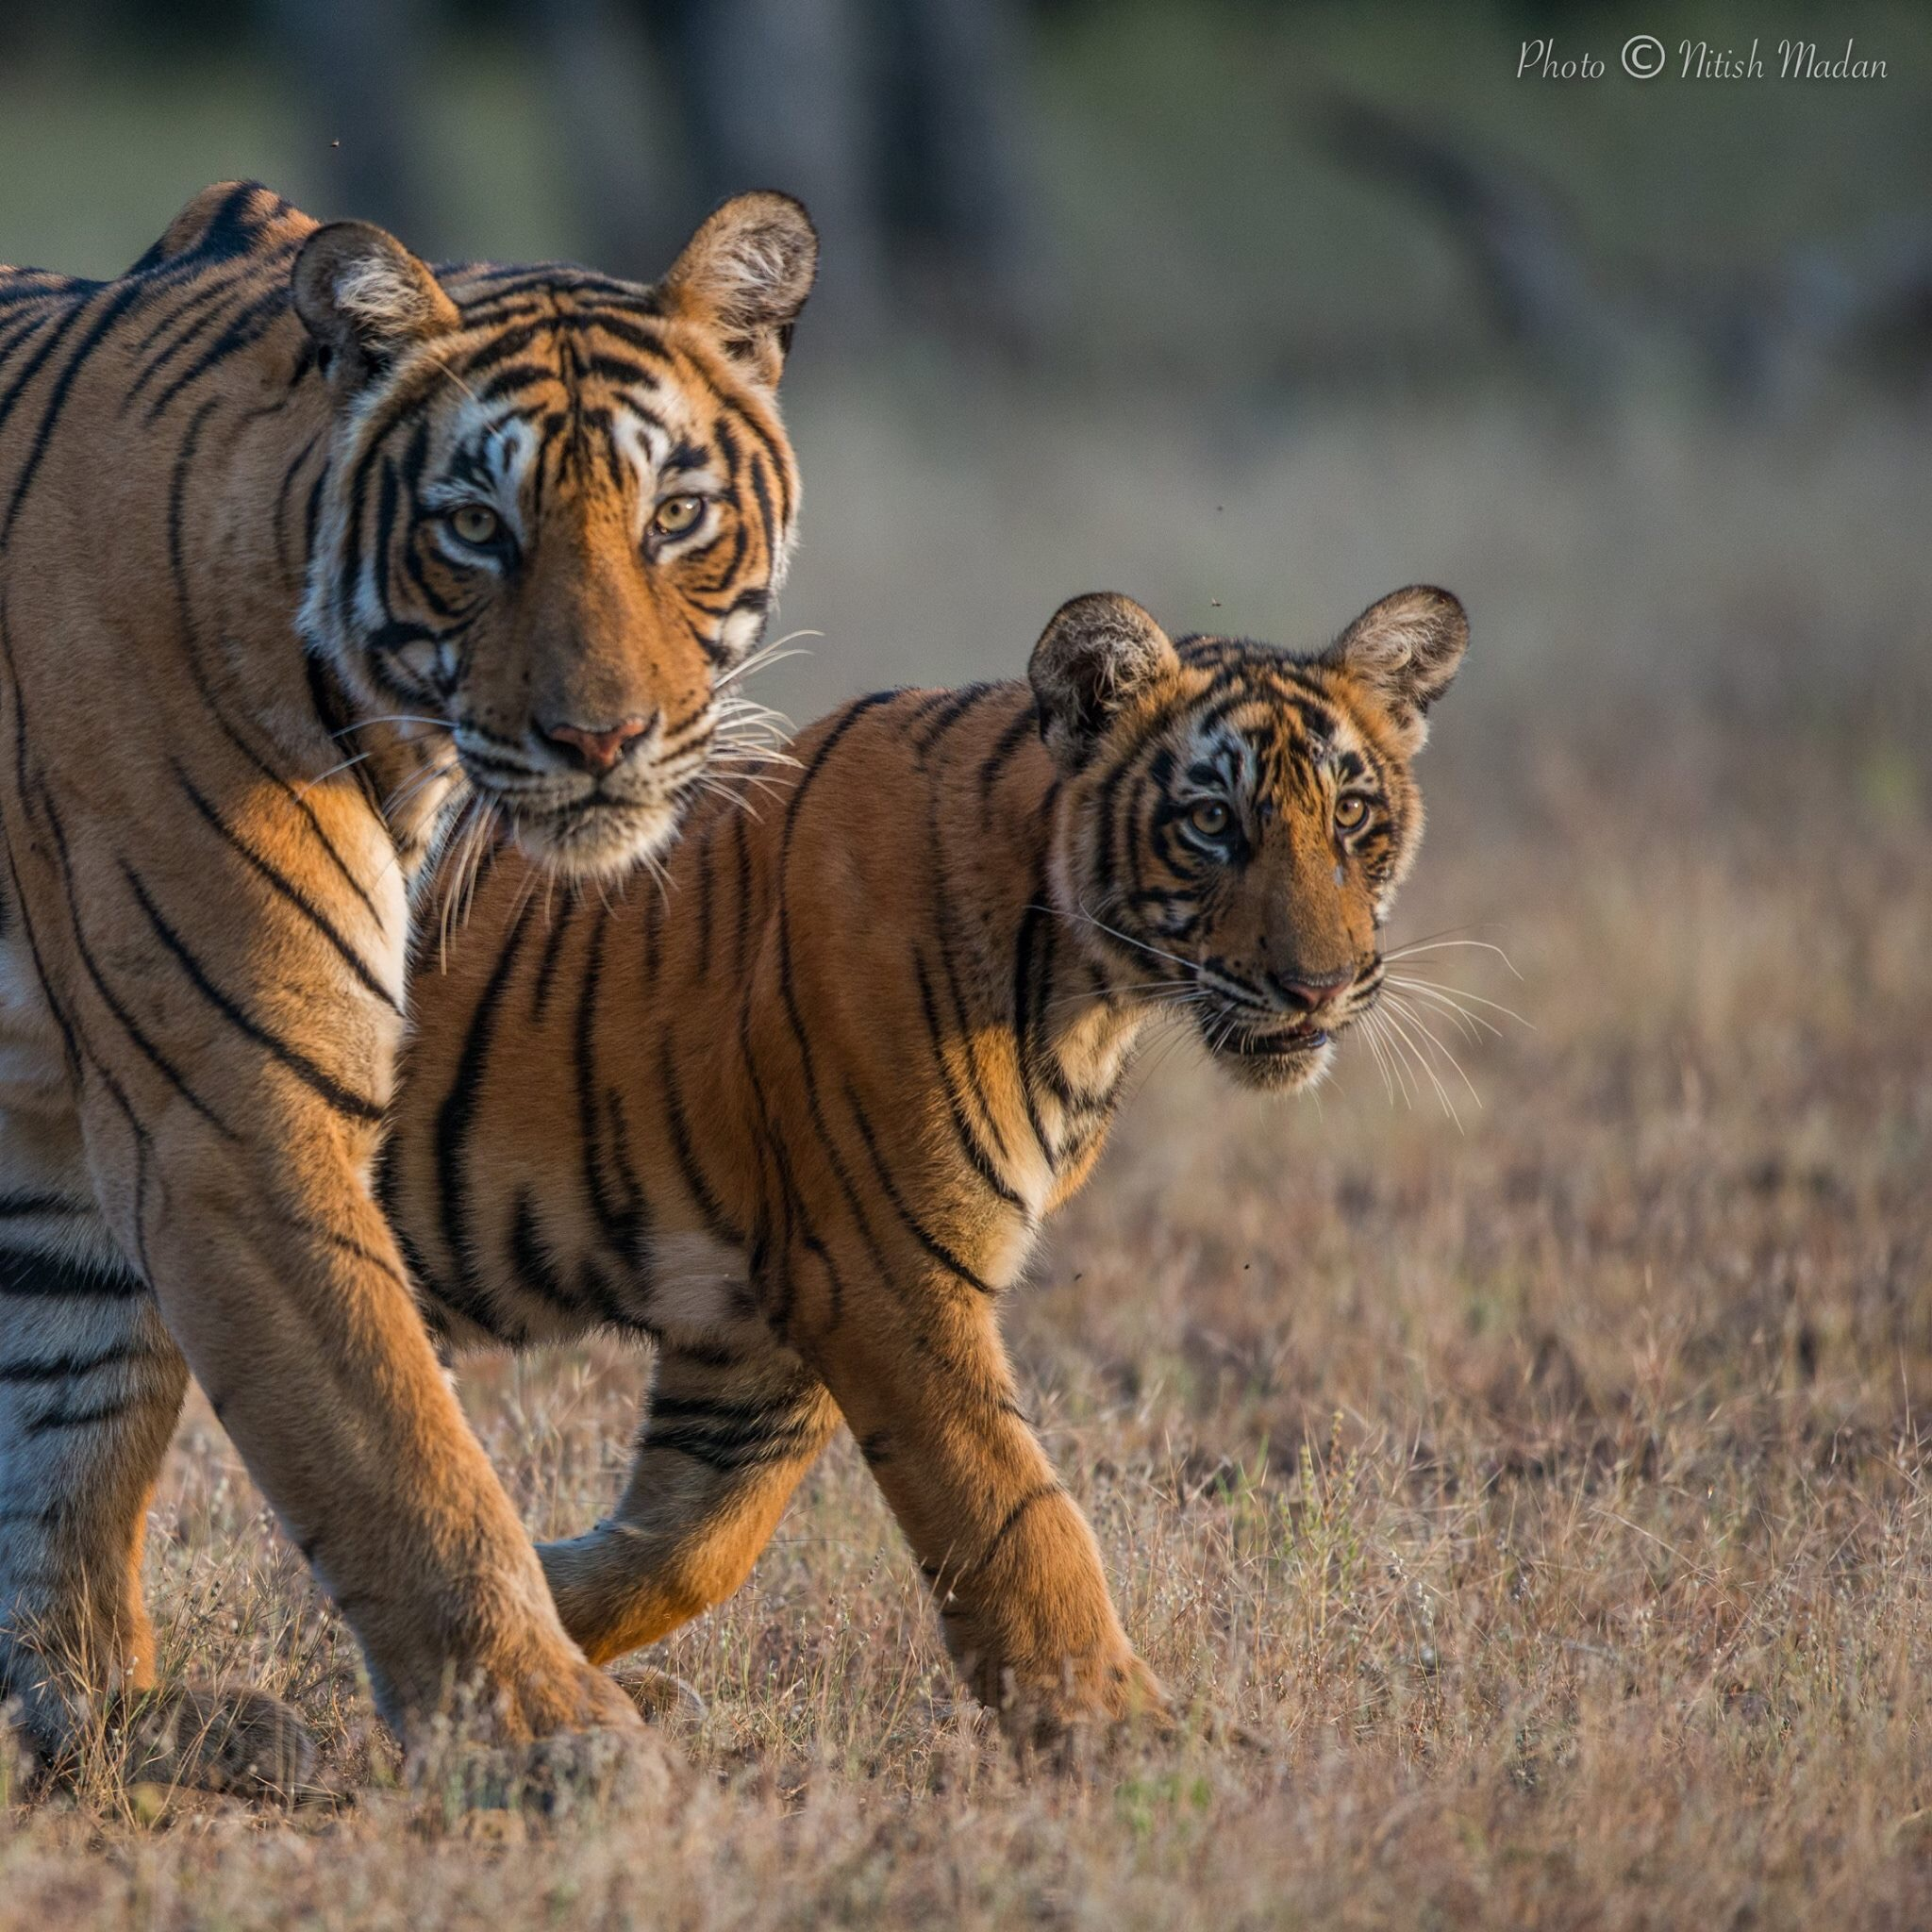 peaceful coexistence and responsible environmental stewardship for nitish madan photograph